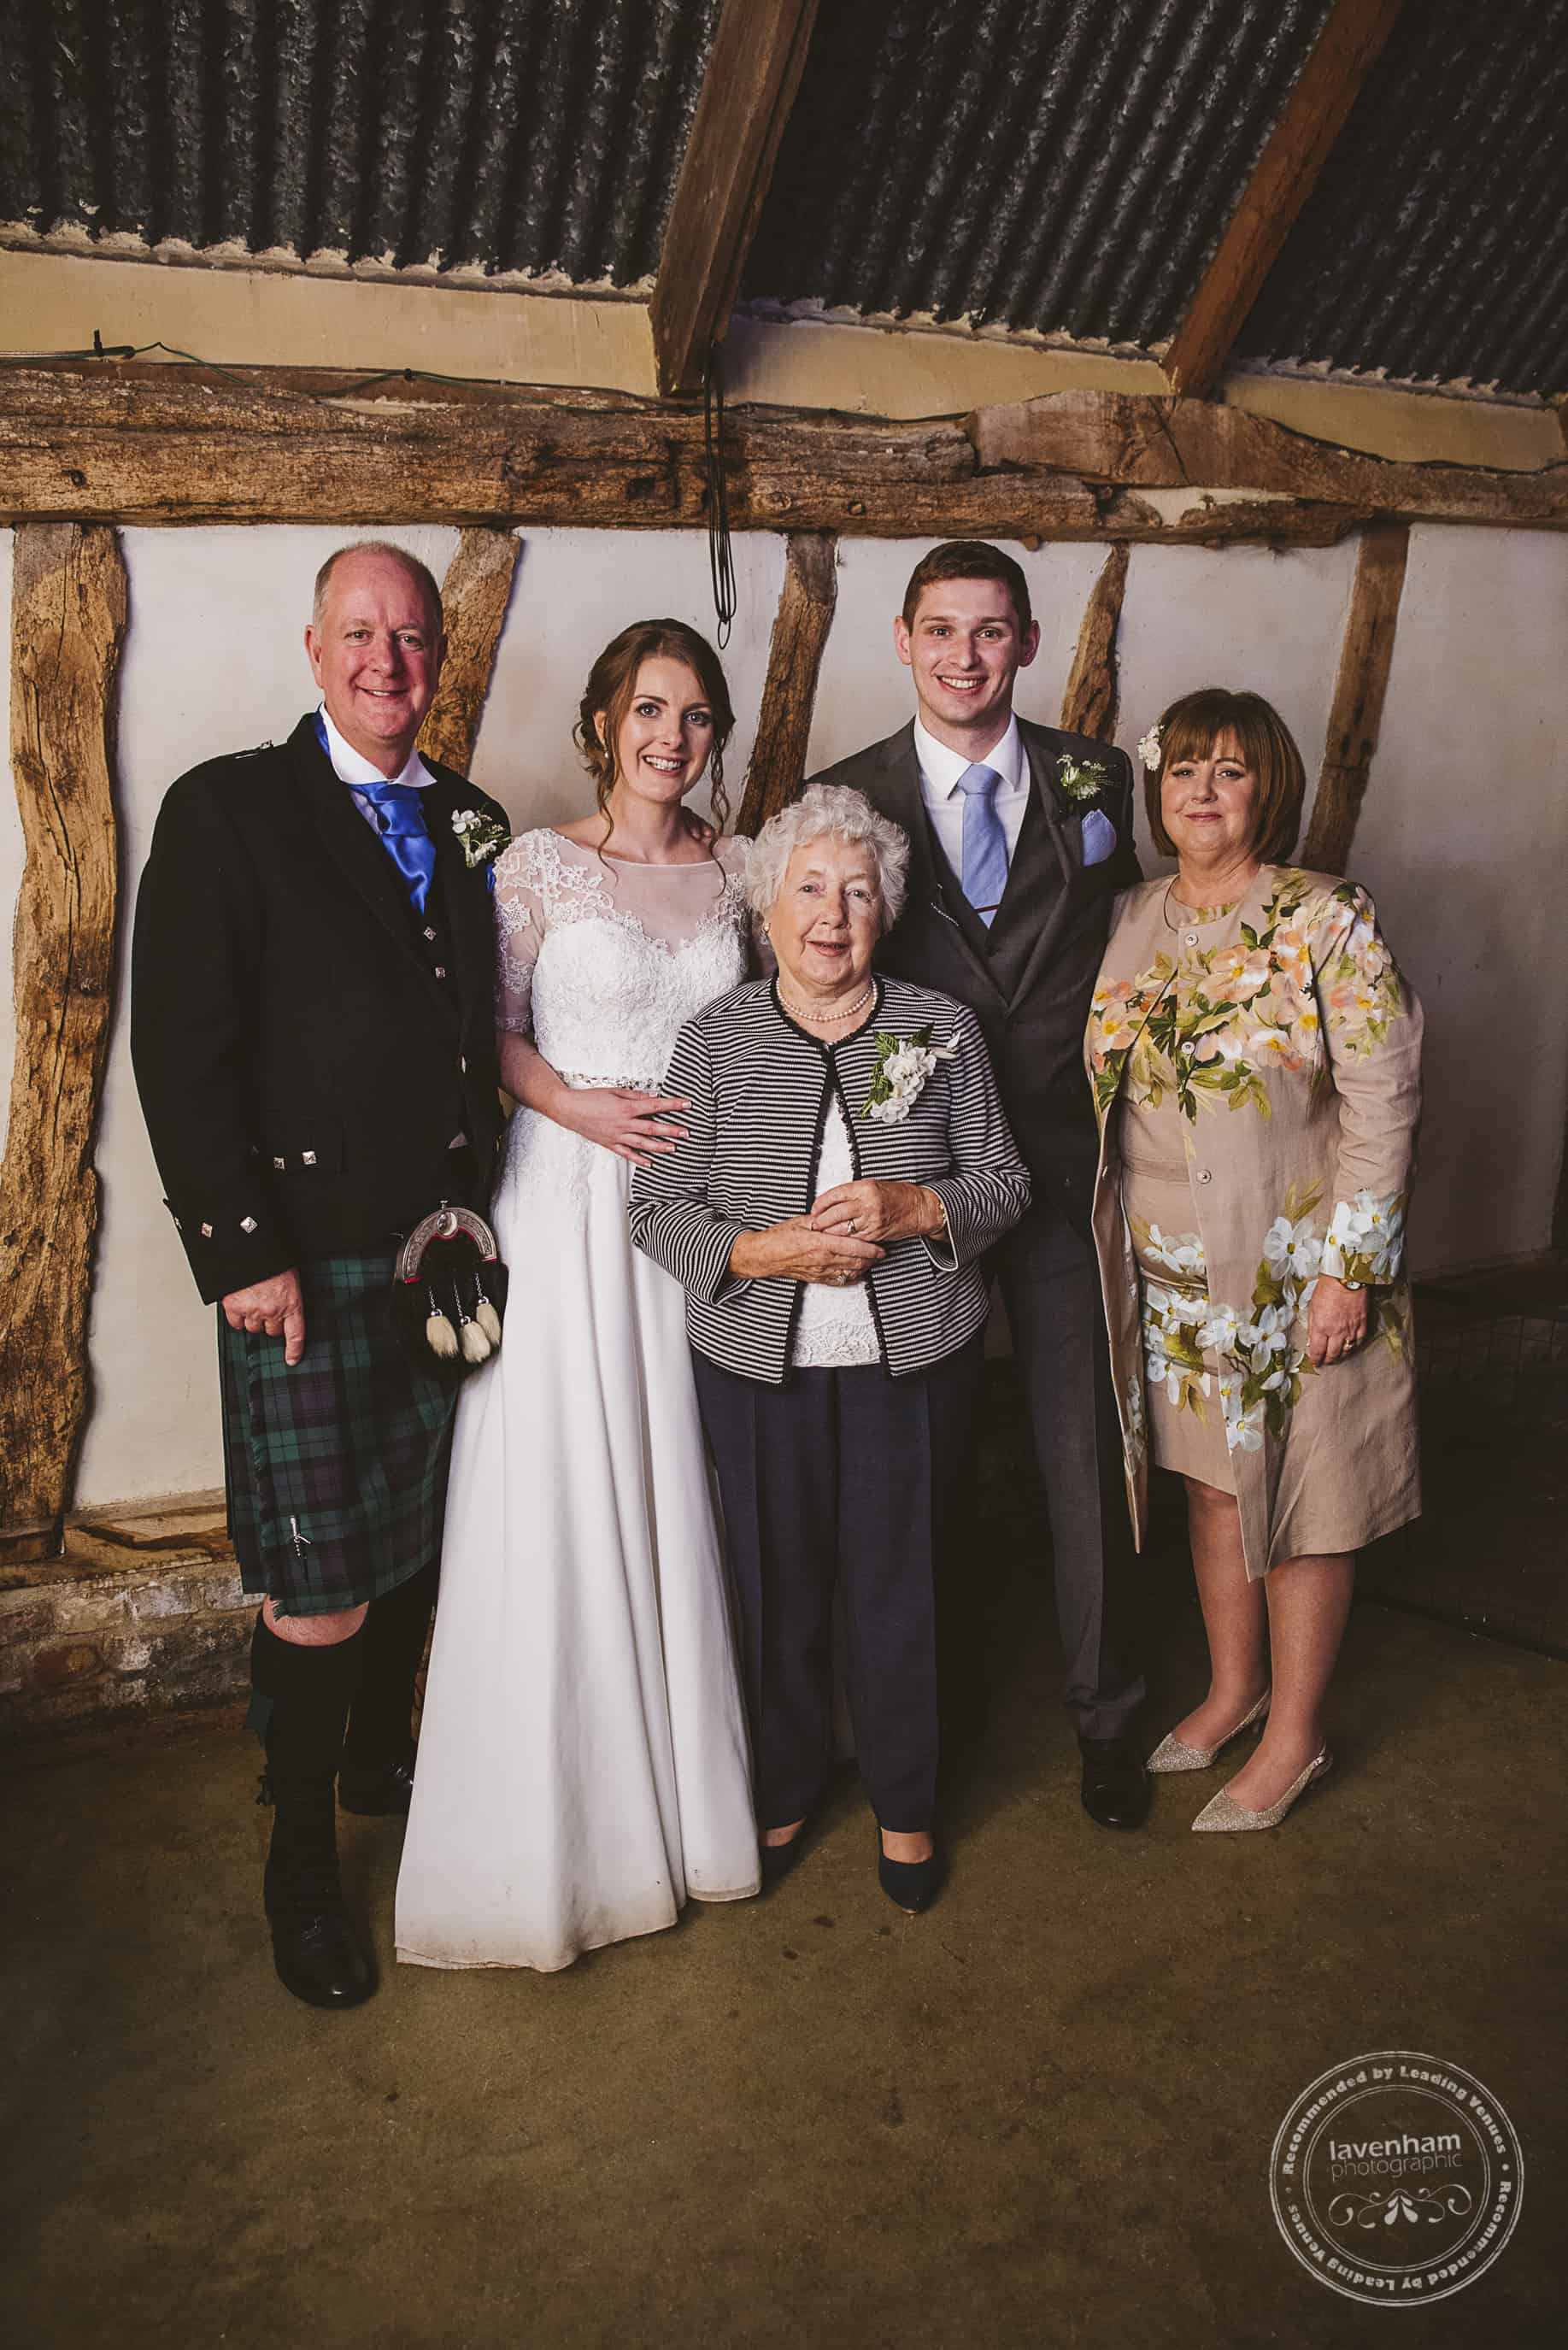 220918 Alpheton Barn Wedding Photography by Lavenham Photographic 121